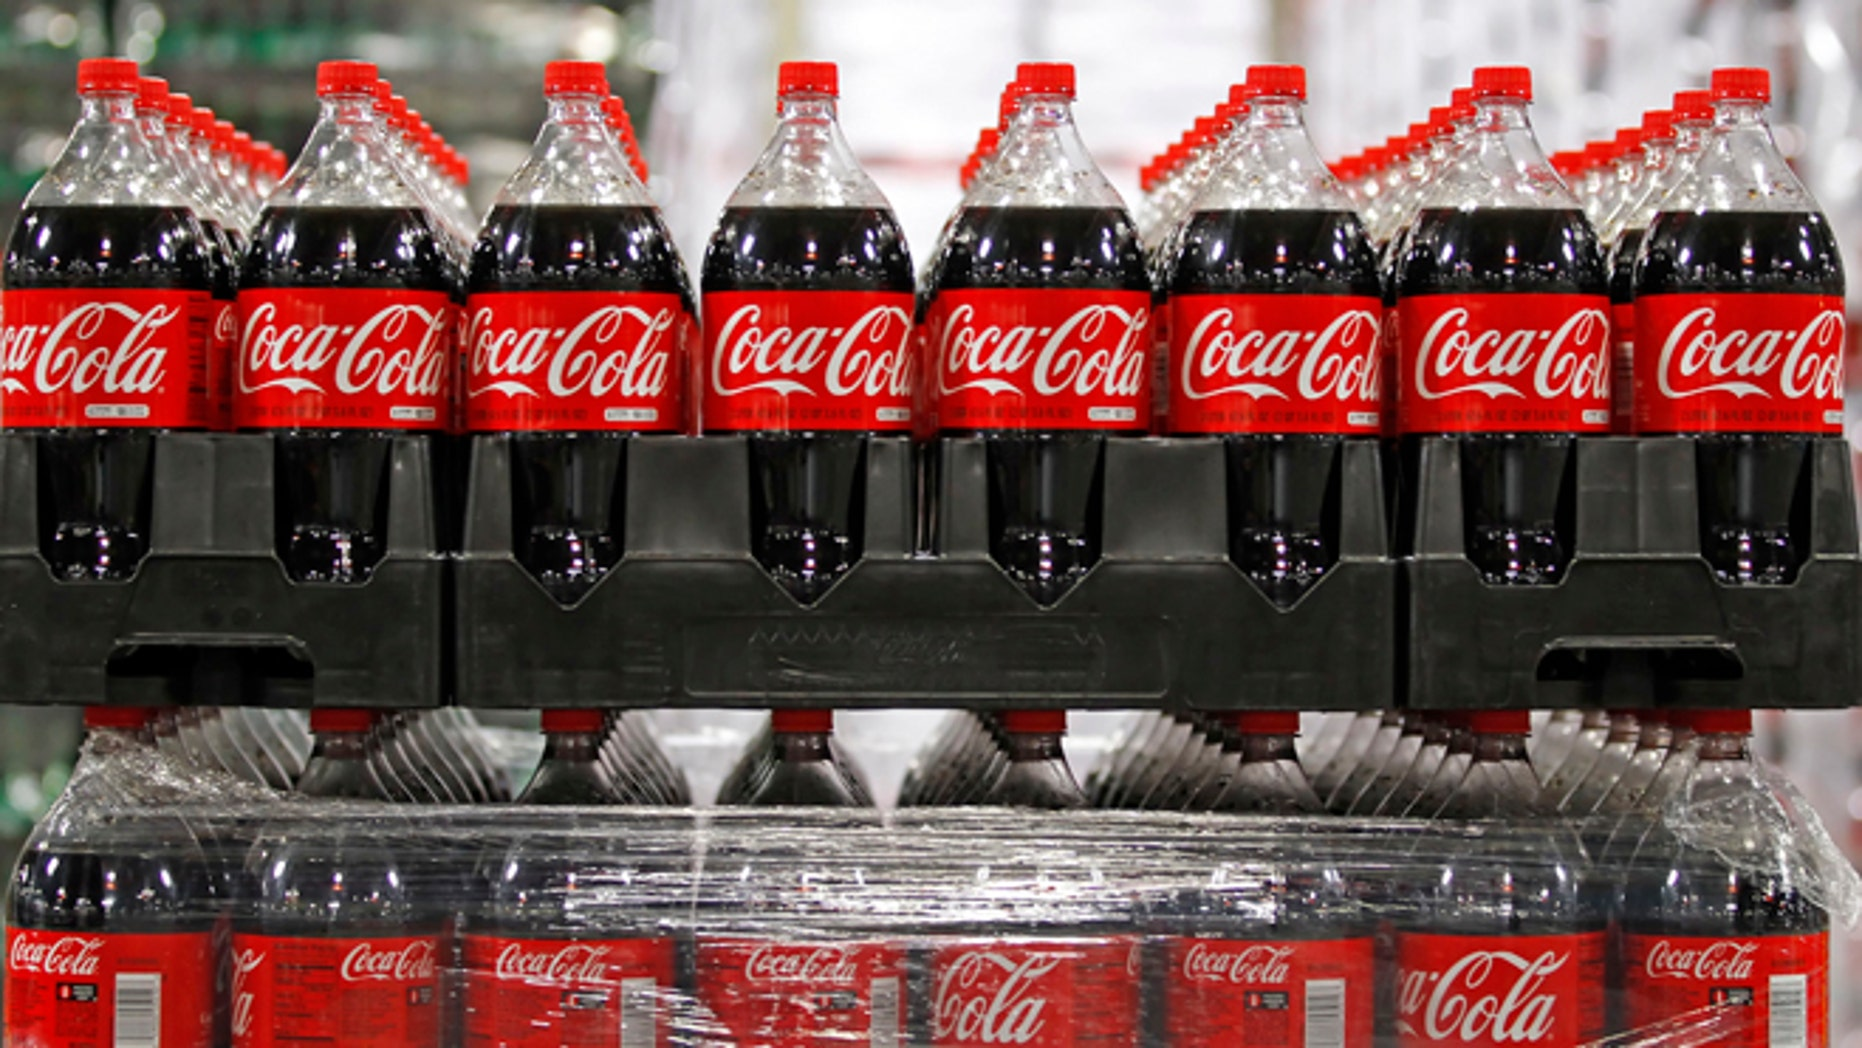 March 9, 2011: Bottles of Coca-Cola, which will be delivered to stores, are seen in a warehouse at the Swire Coca-Cola facility in Draper, Utah.